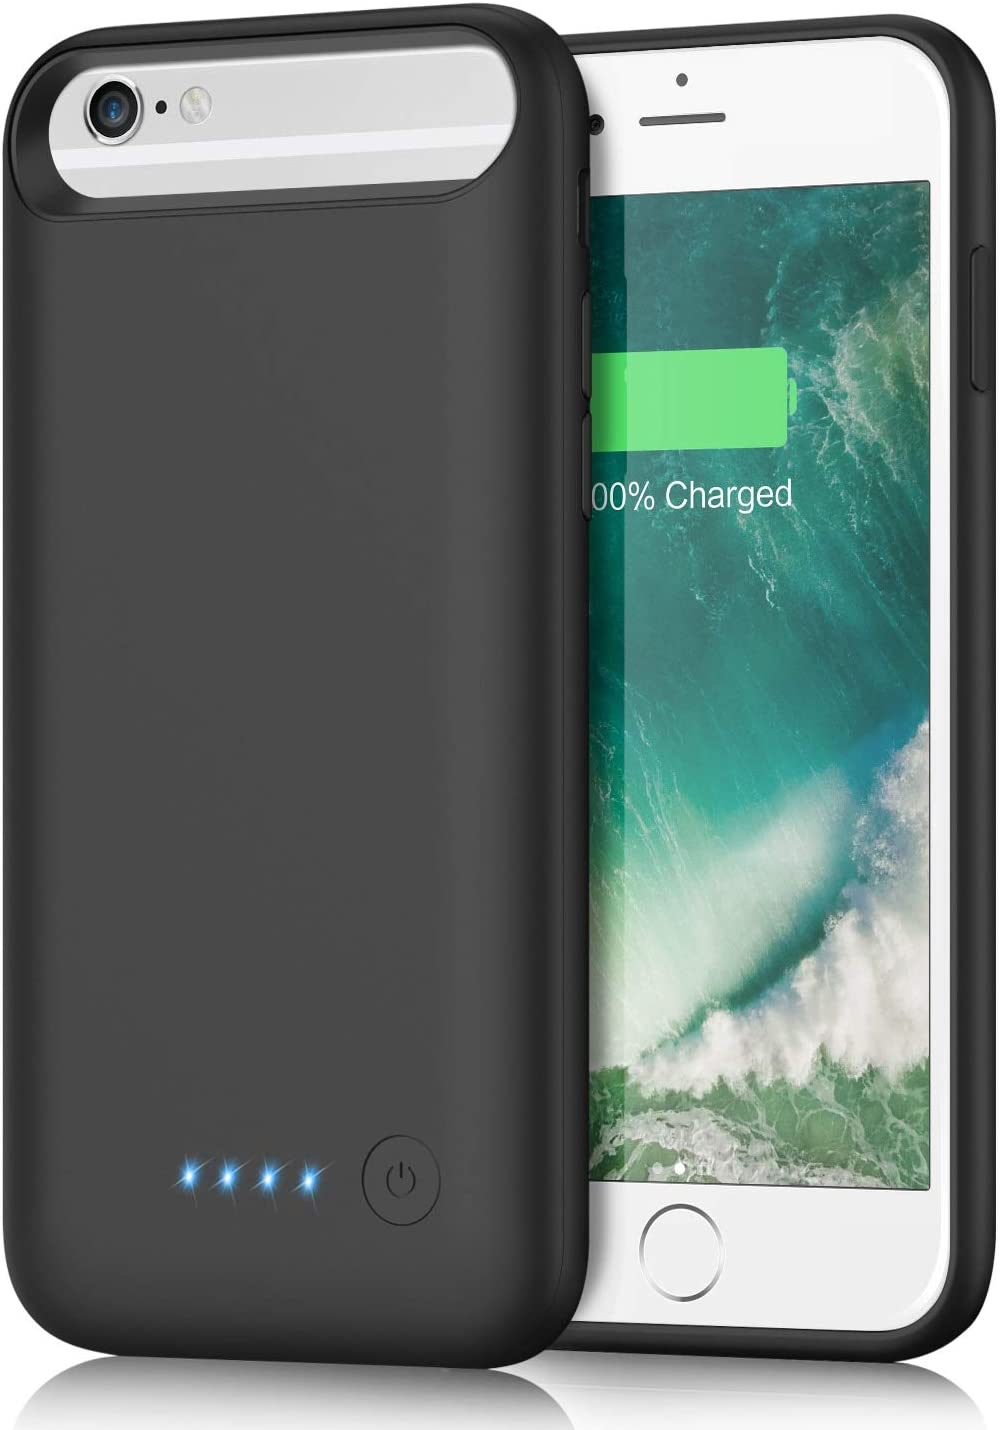 Battery Case for iPhone 6s/ 6/8/ 7, kilponen 6000mAh Portable Rechargeable Charging Case Extended Battery Pack for iPhone 8/7/6s/6 (4.7 inch) Protective Backup Charger Case-Black